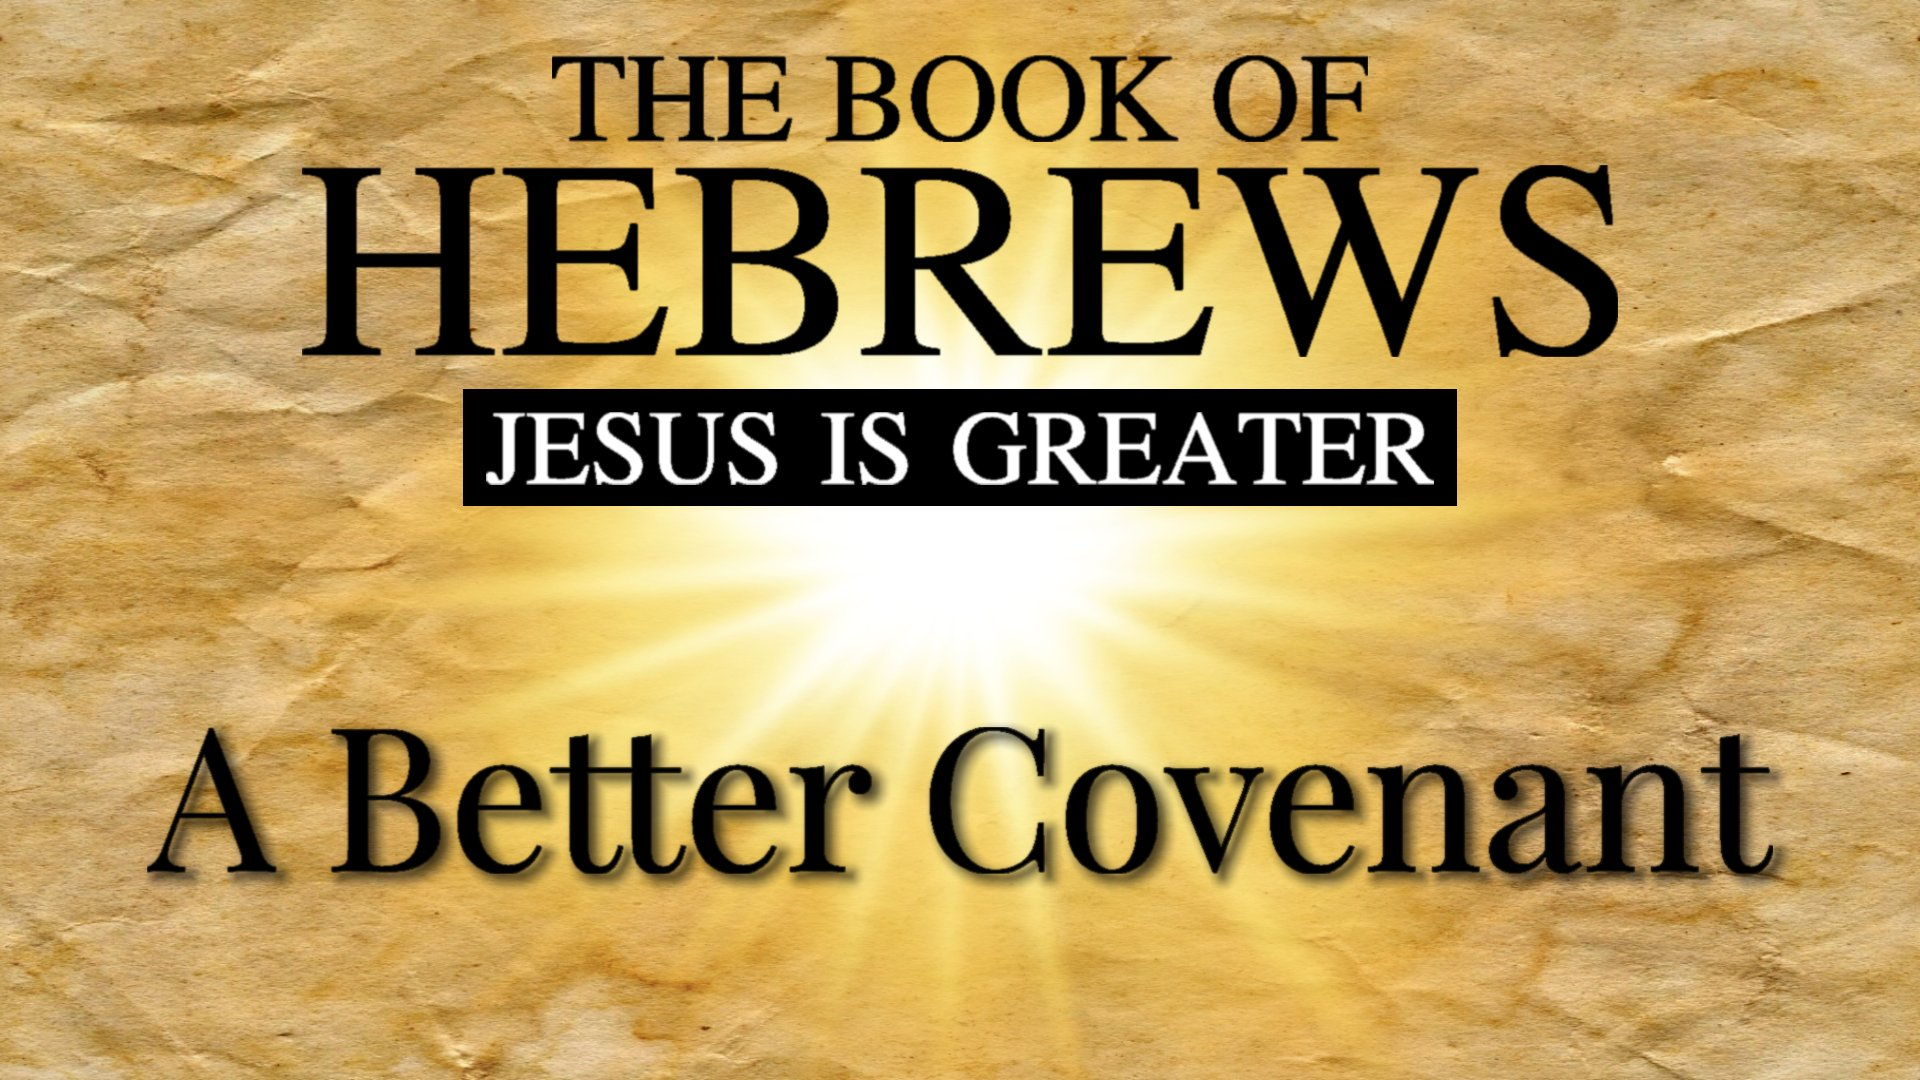 16 A Better Covenant